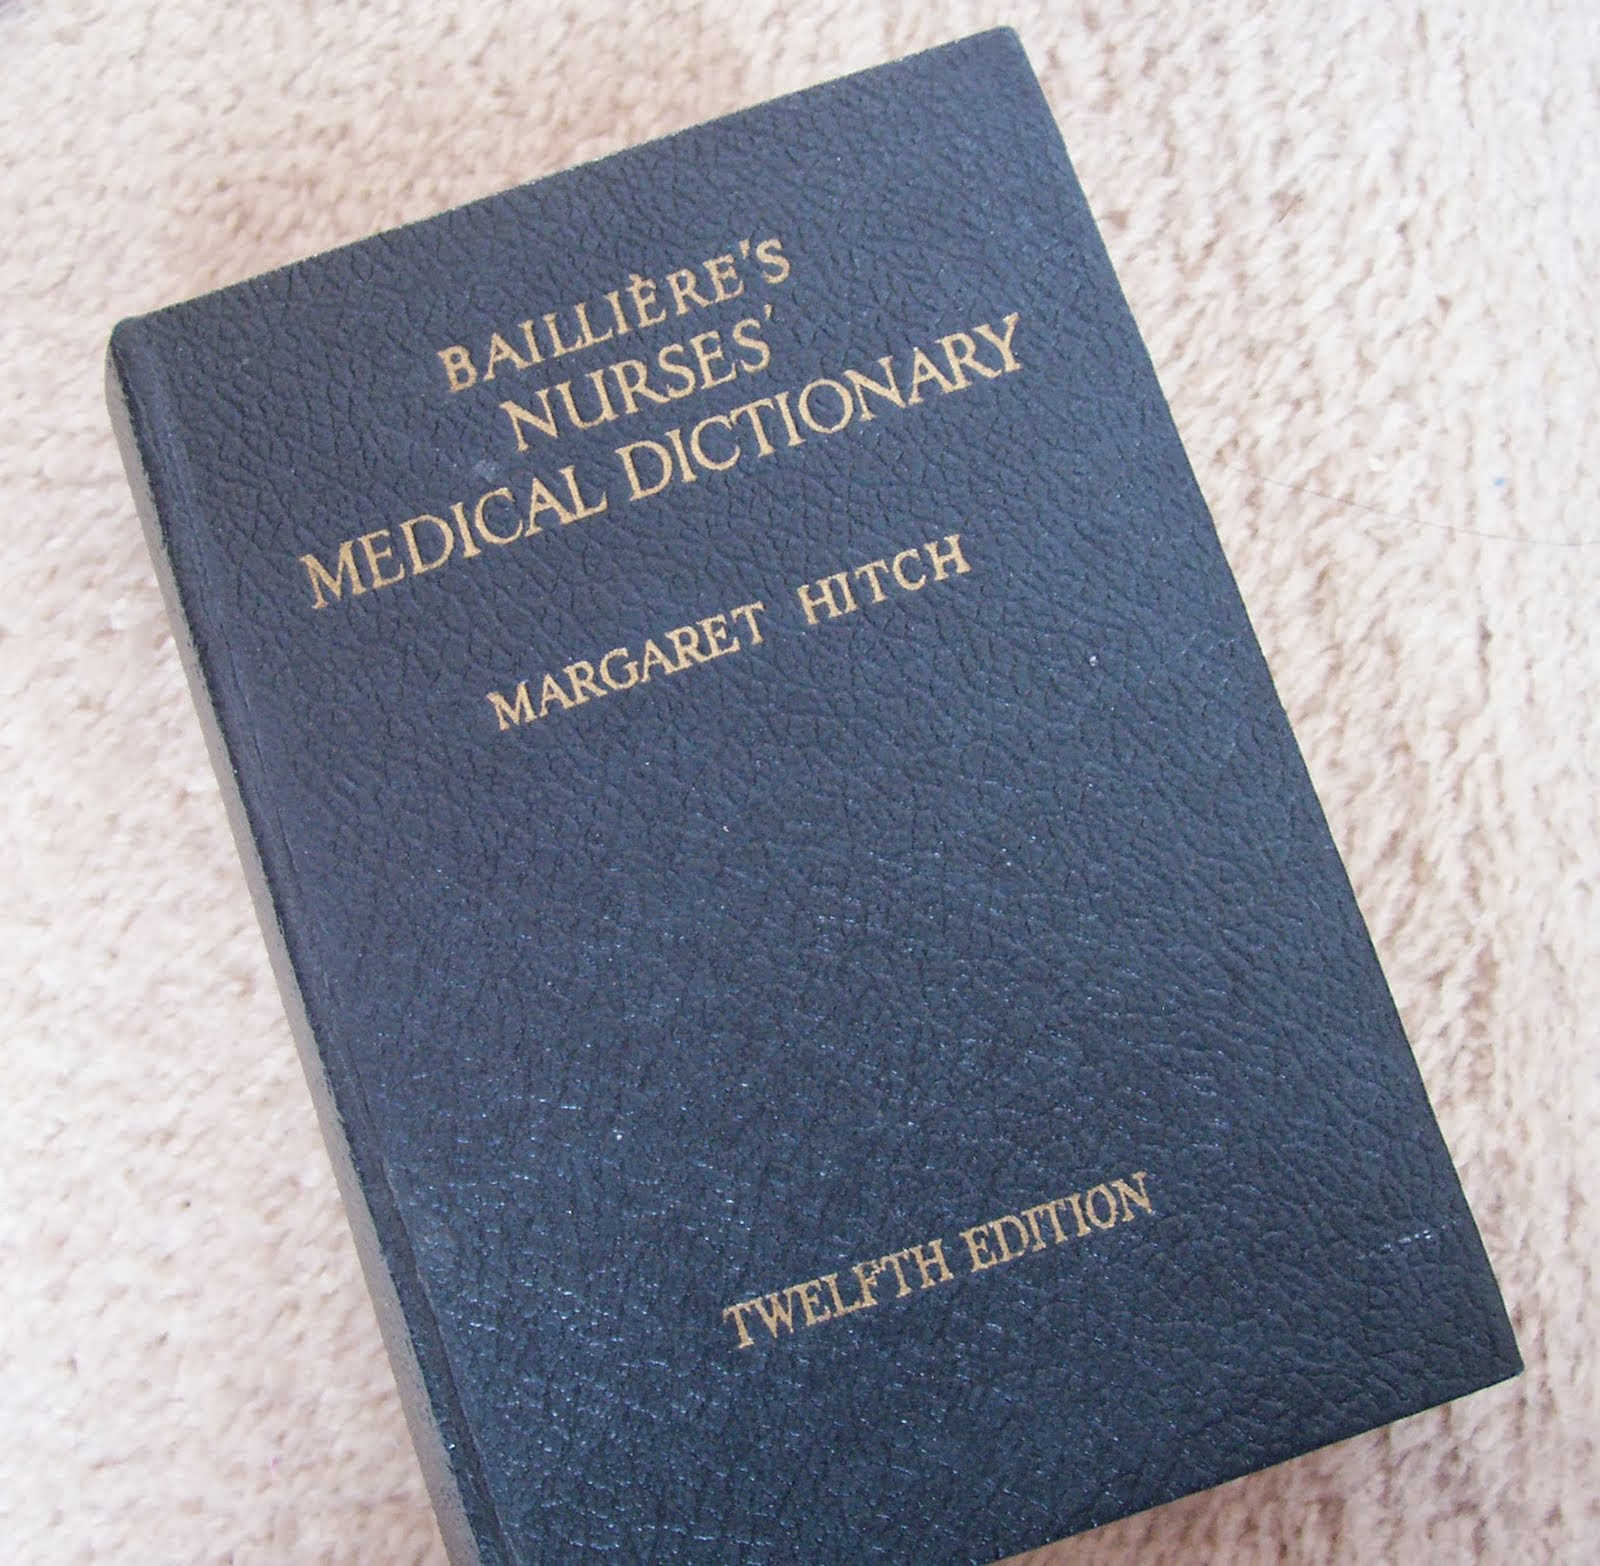 image vintage bailliere's nurses' medical dictionary margaret hitch